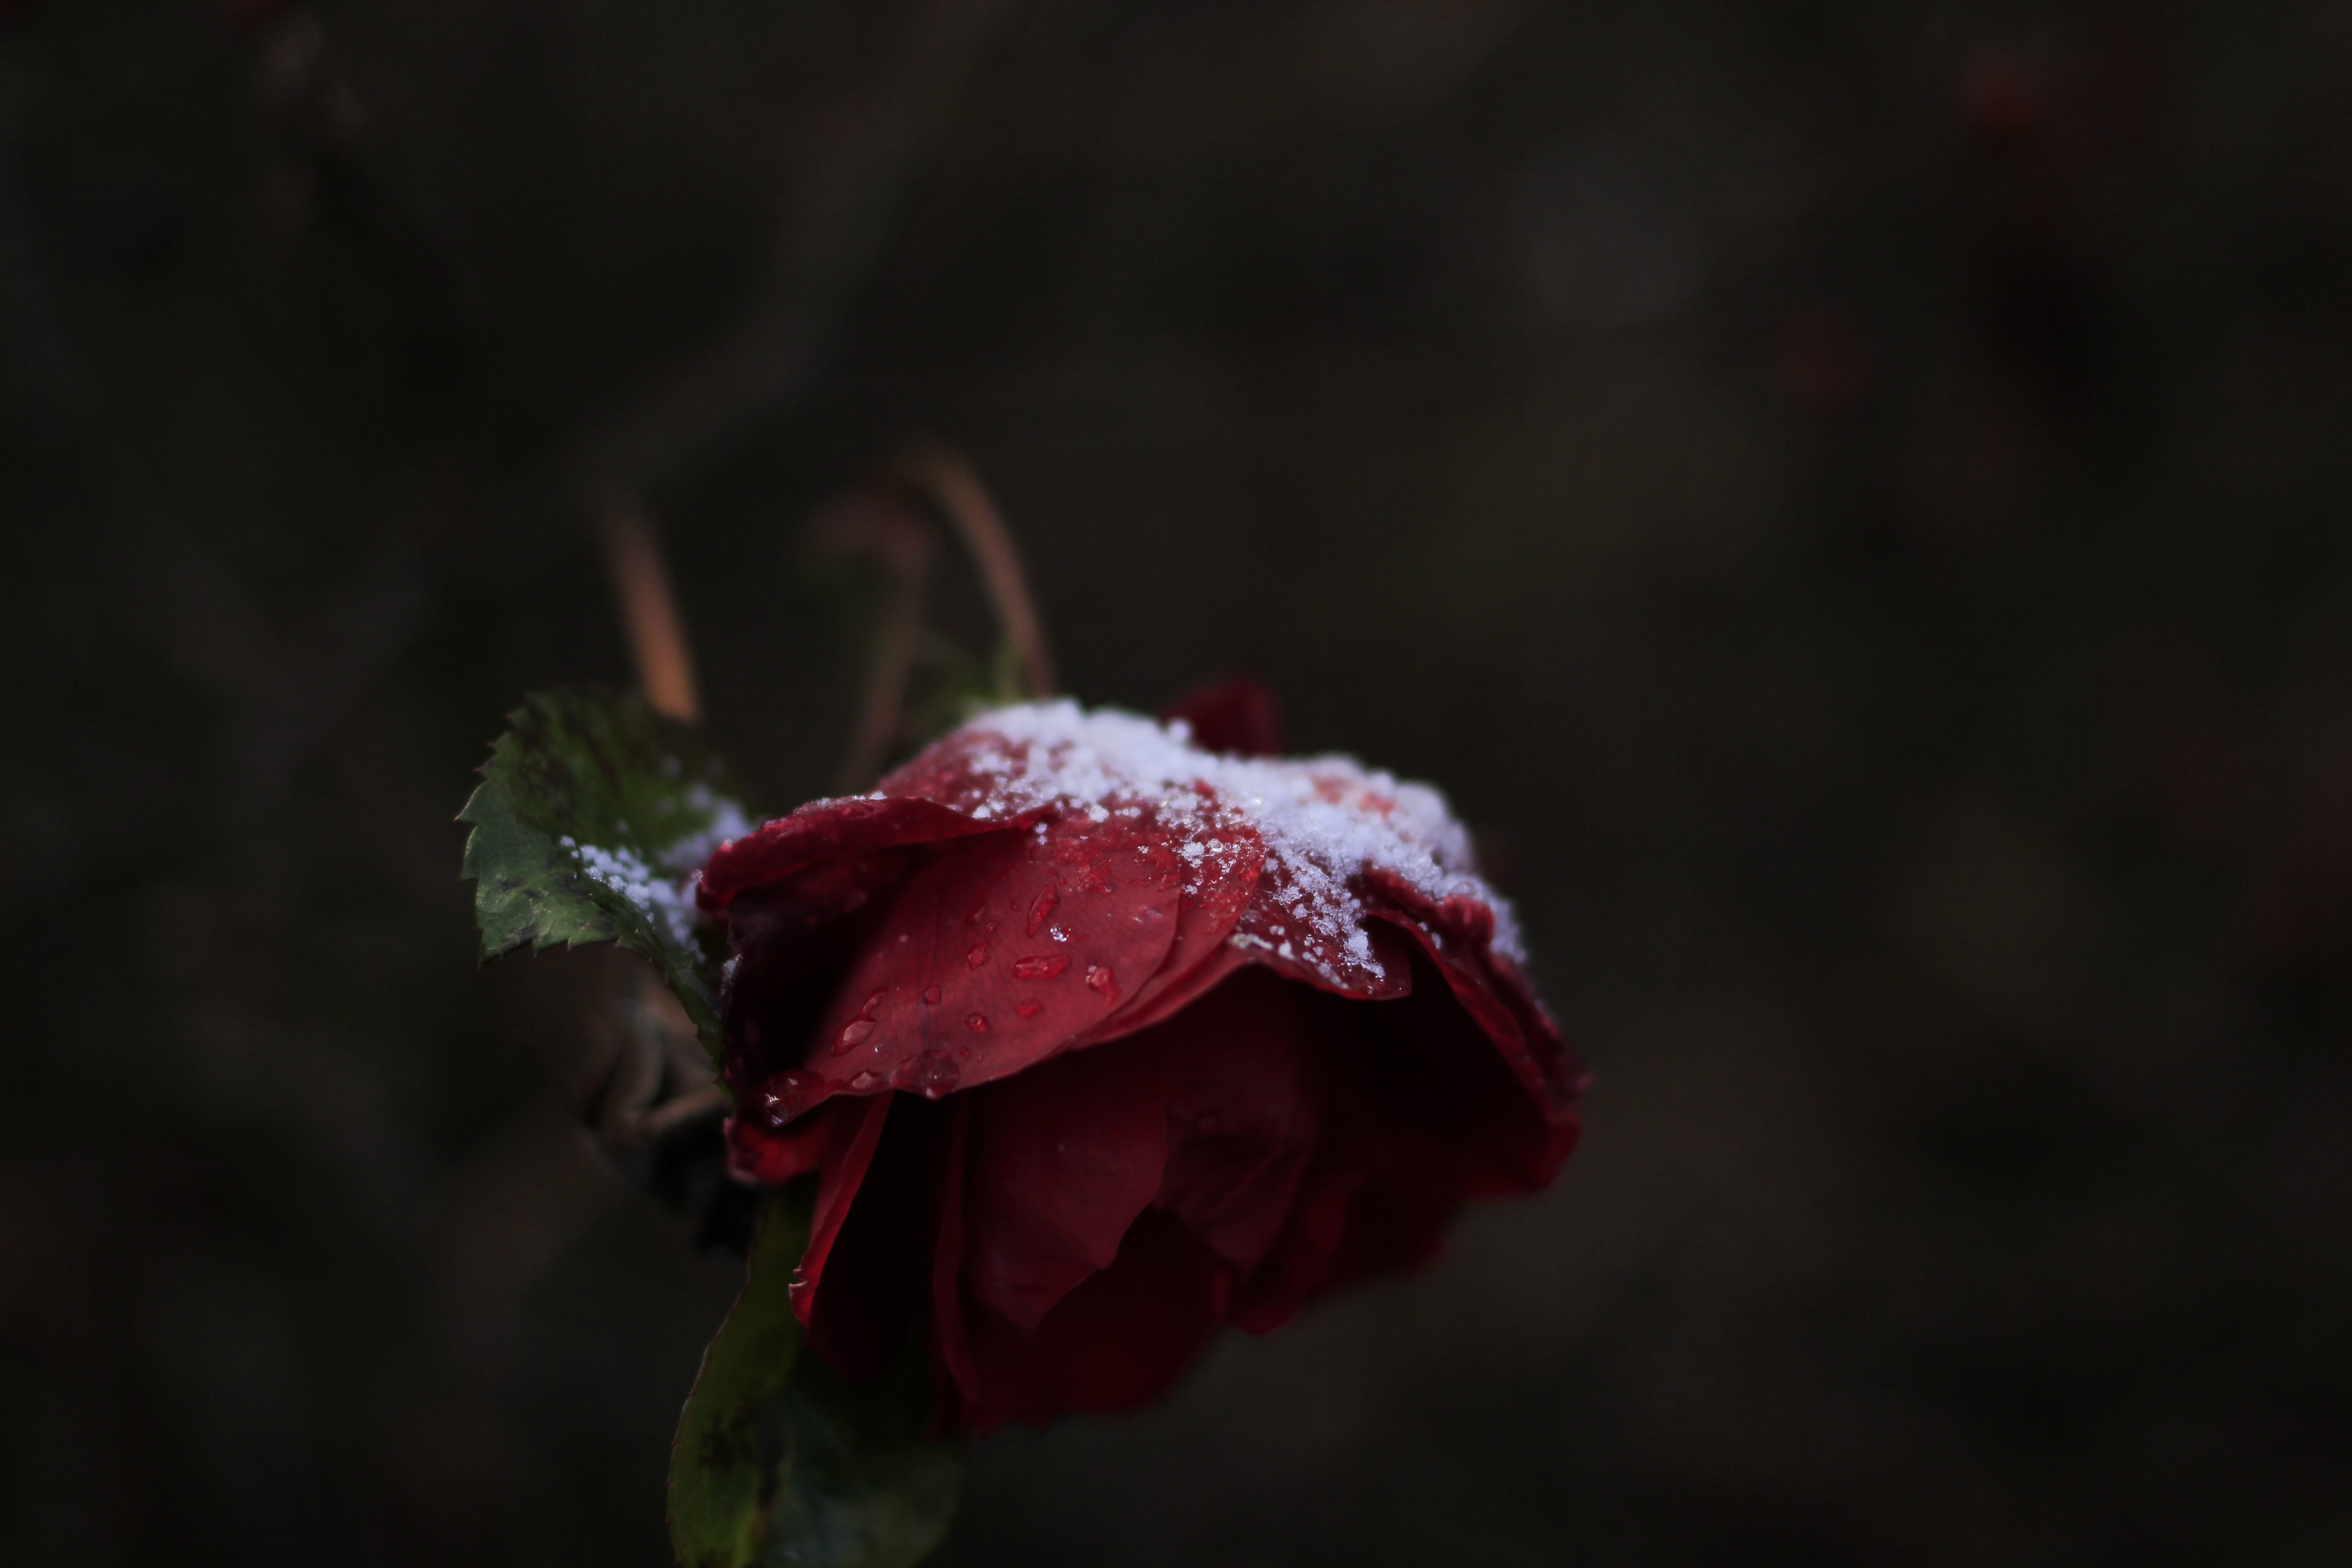 snow powders on red rose flower